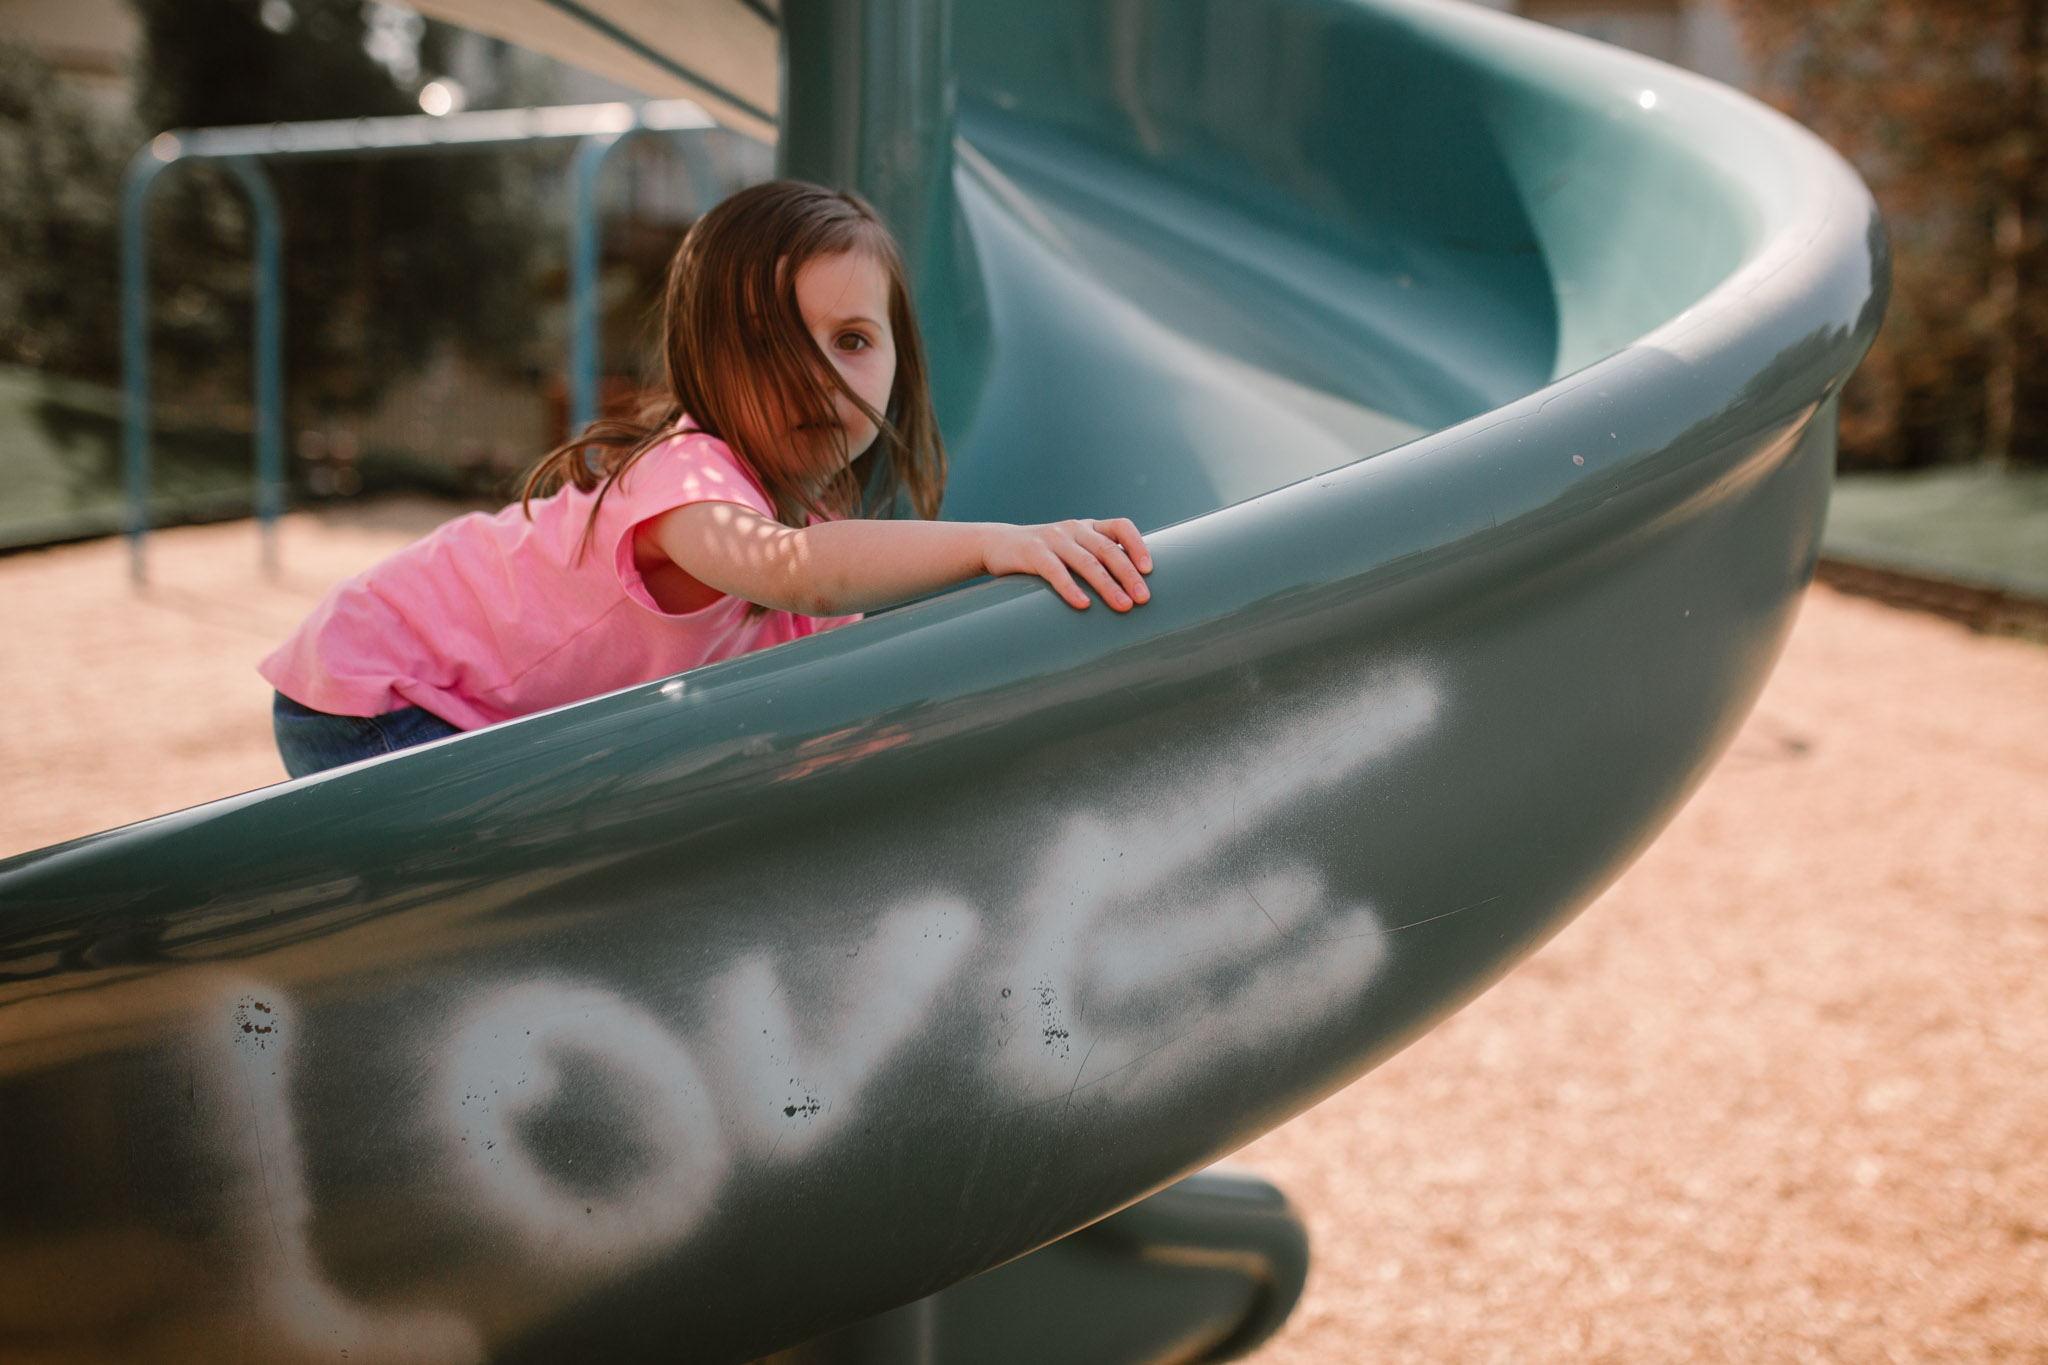 Toddler climbs up a  green slide with Love graffiti painted on documentary lifestyle photography ashburn virginia